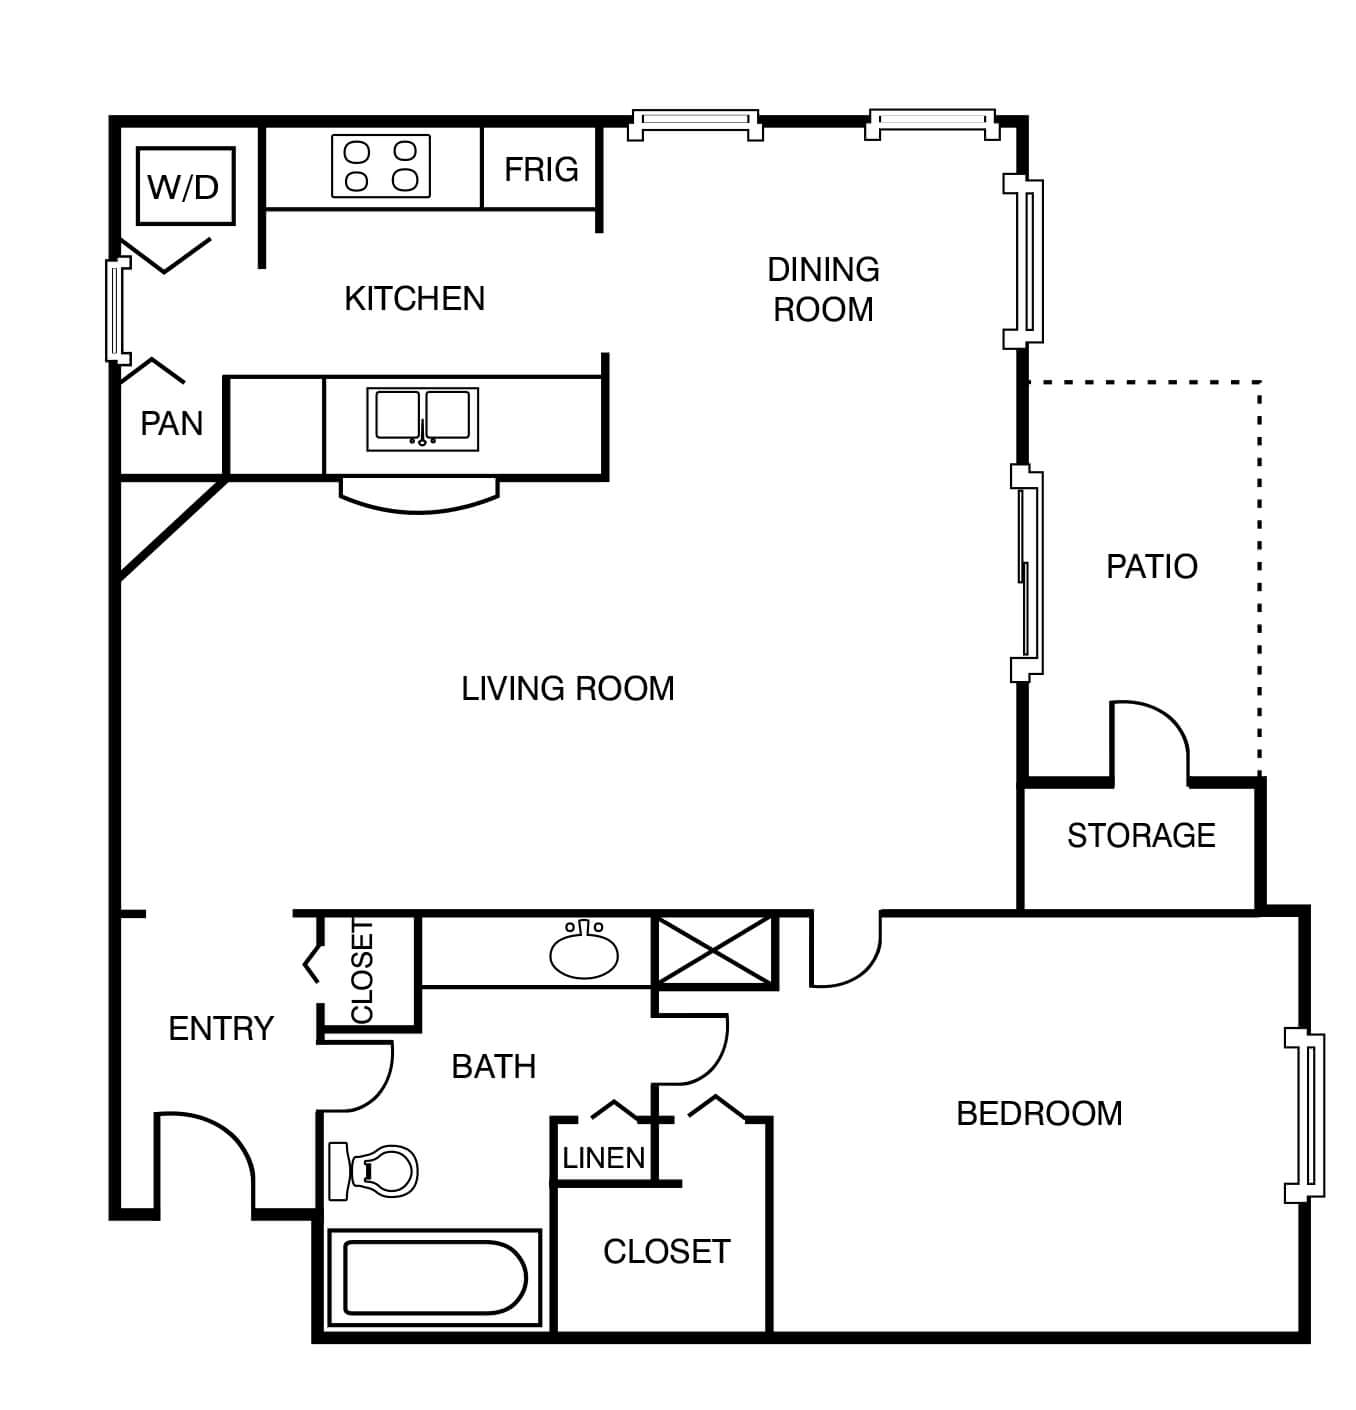 1Bed 1Bath 799 Sq Ft